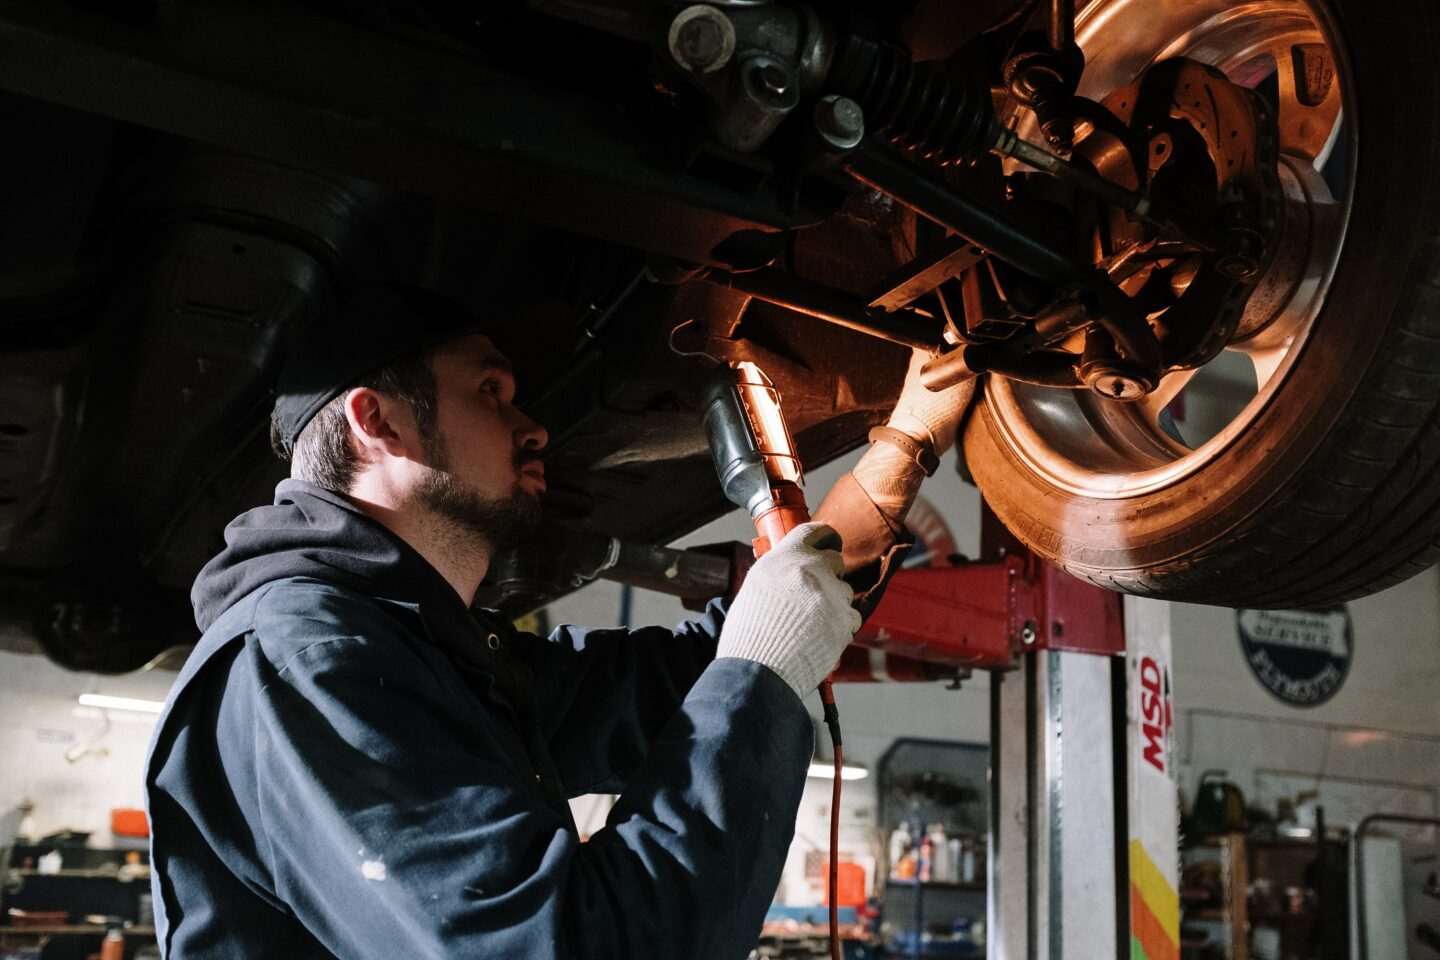 The auto mechanic is inspecting suspension of a car